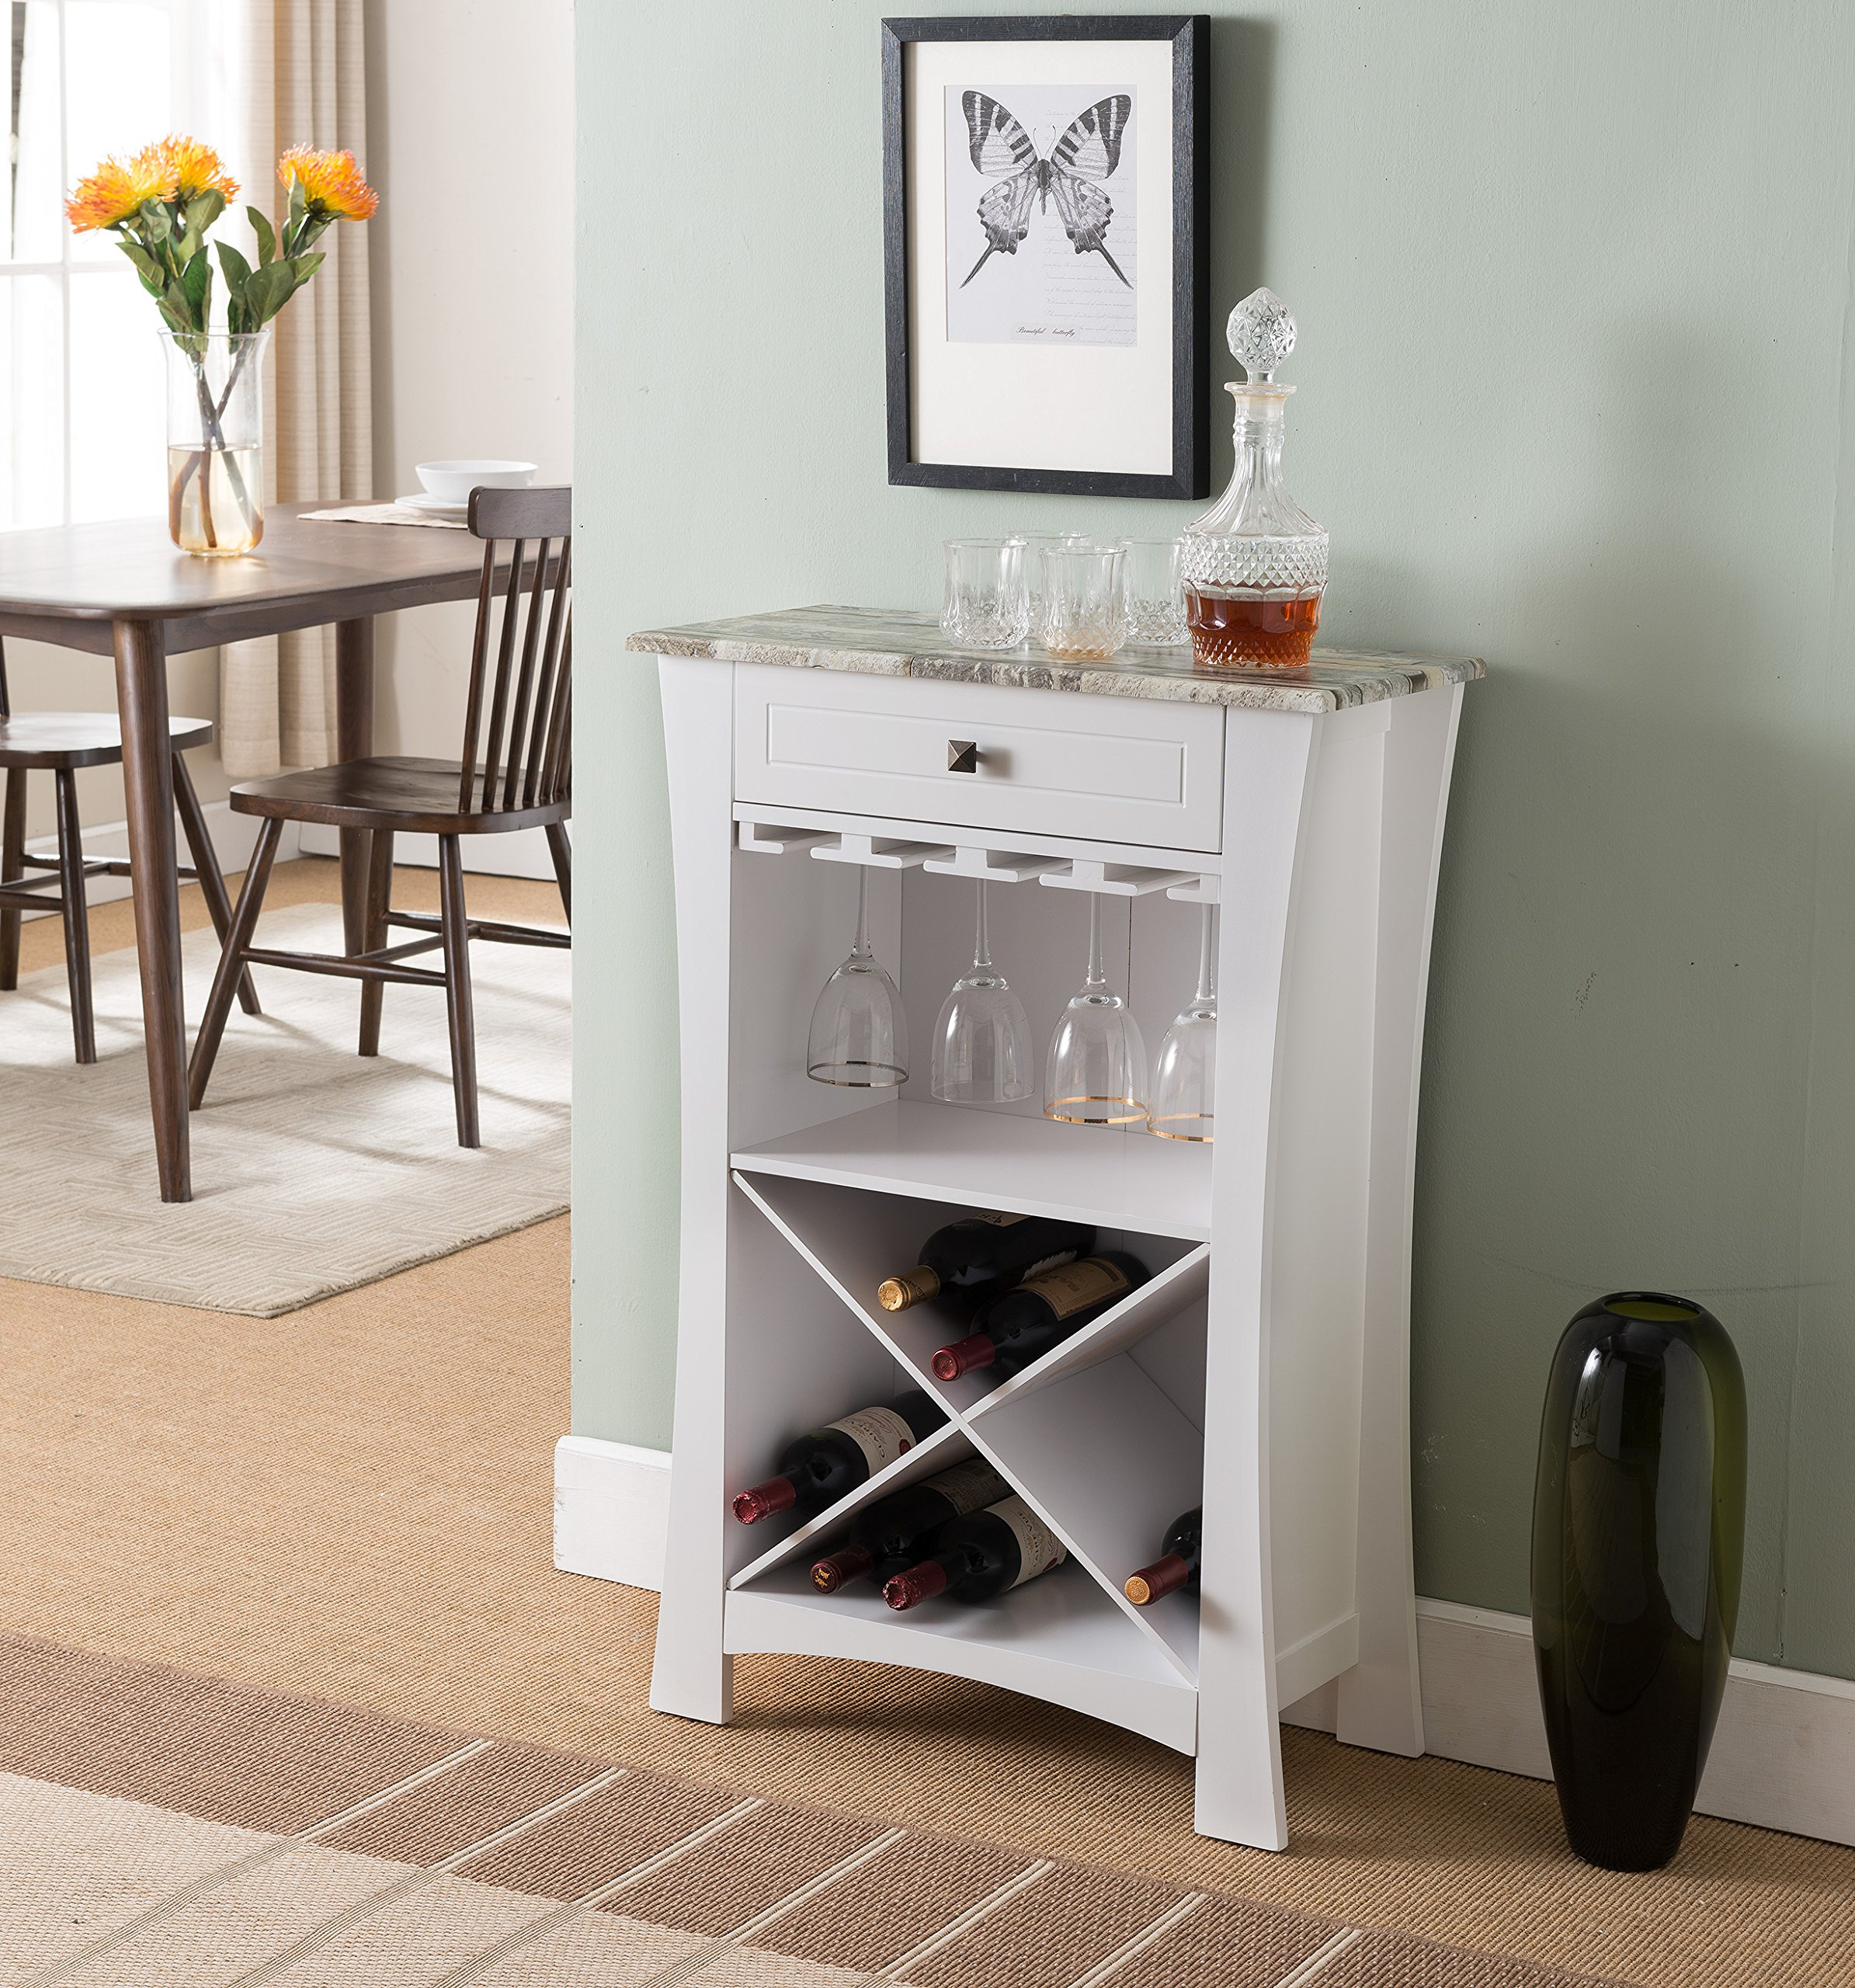 Kings Brand Hiland Bar Cabinet Wine Storage With Glass Holders & Drawer, White, White by Kings Brand Furniture